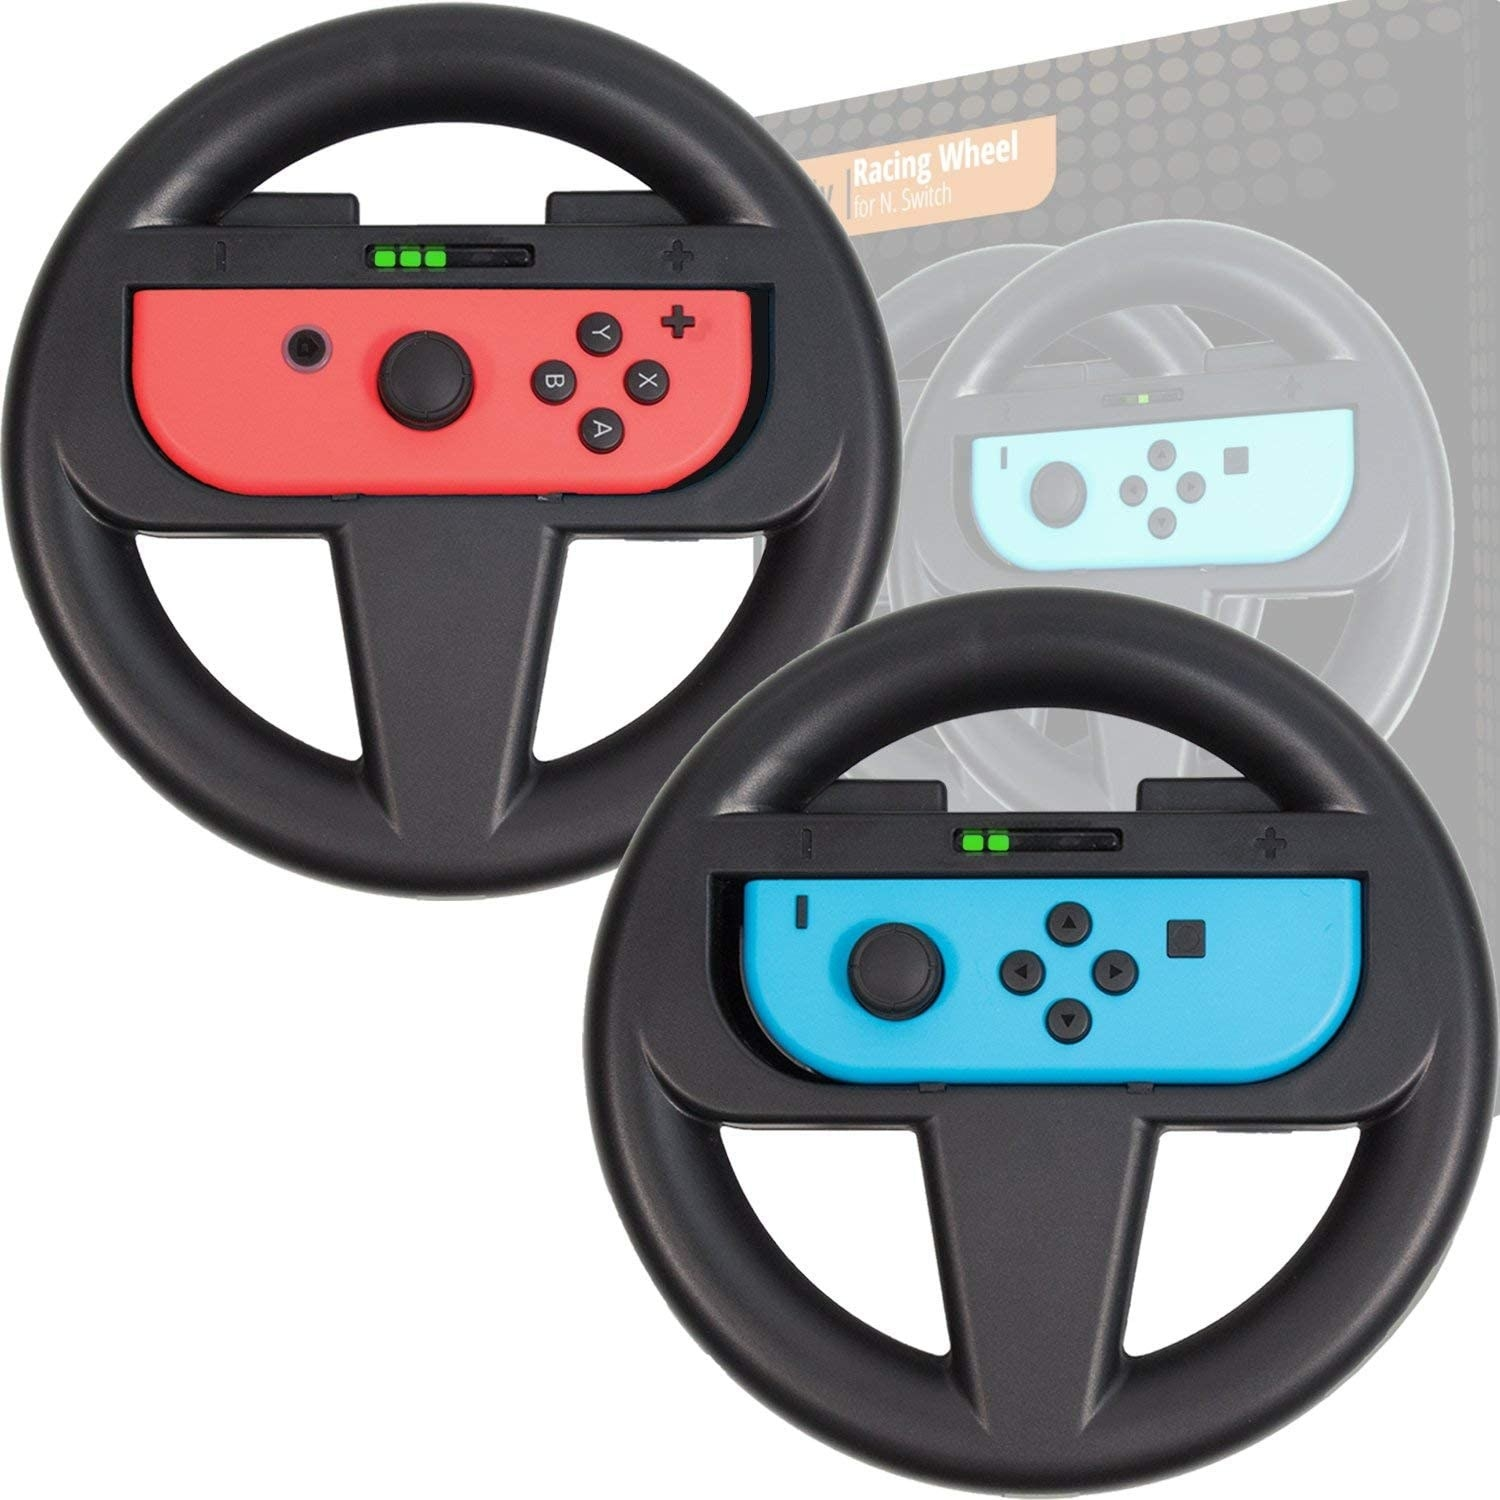 A wheel holds Joy-Con controllers